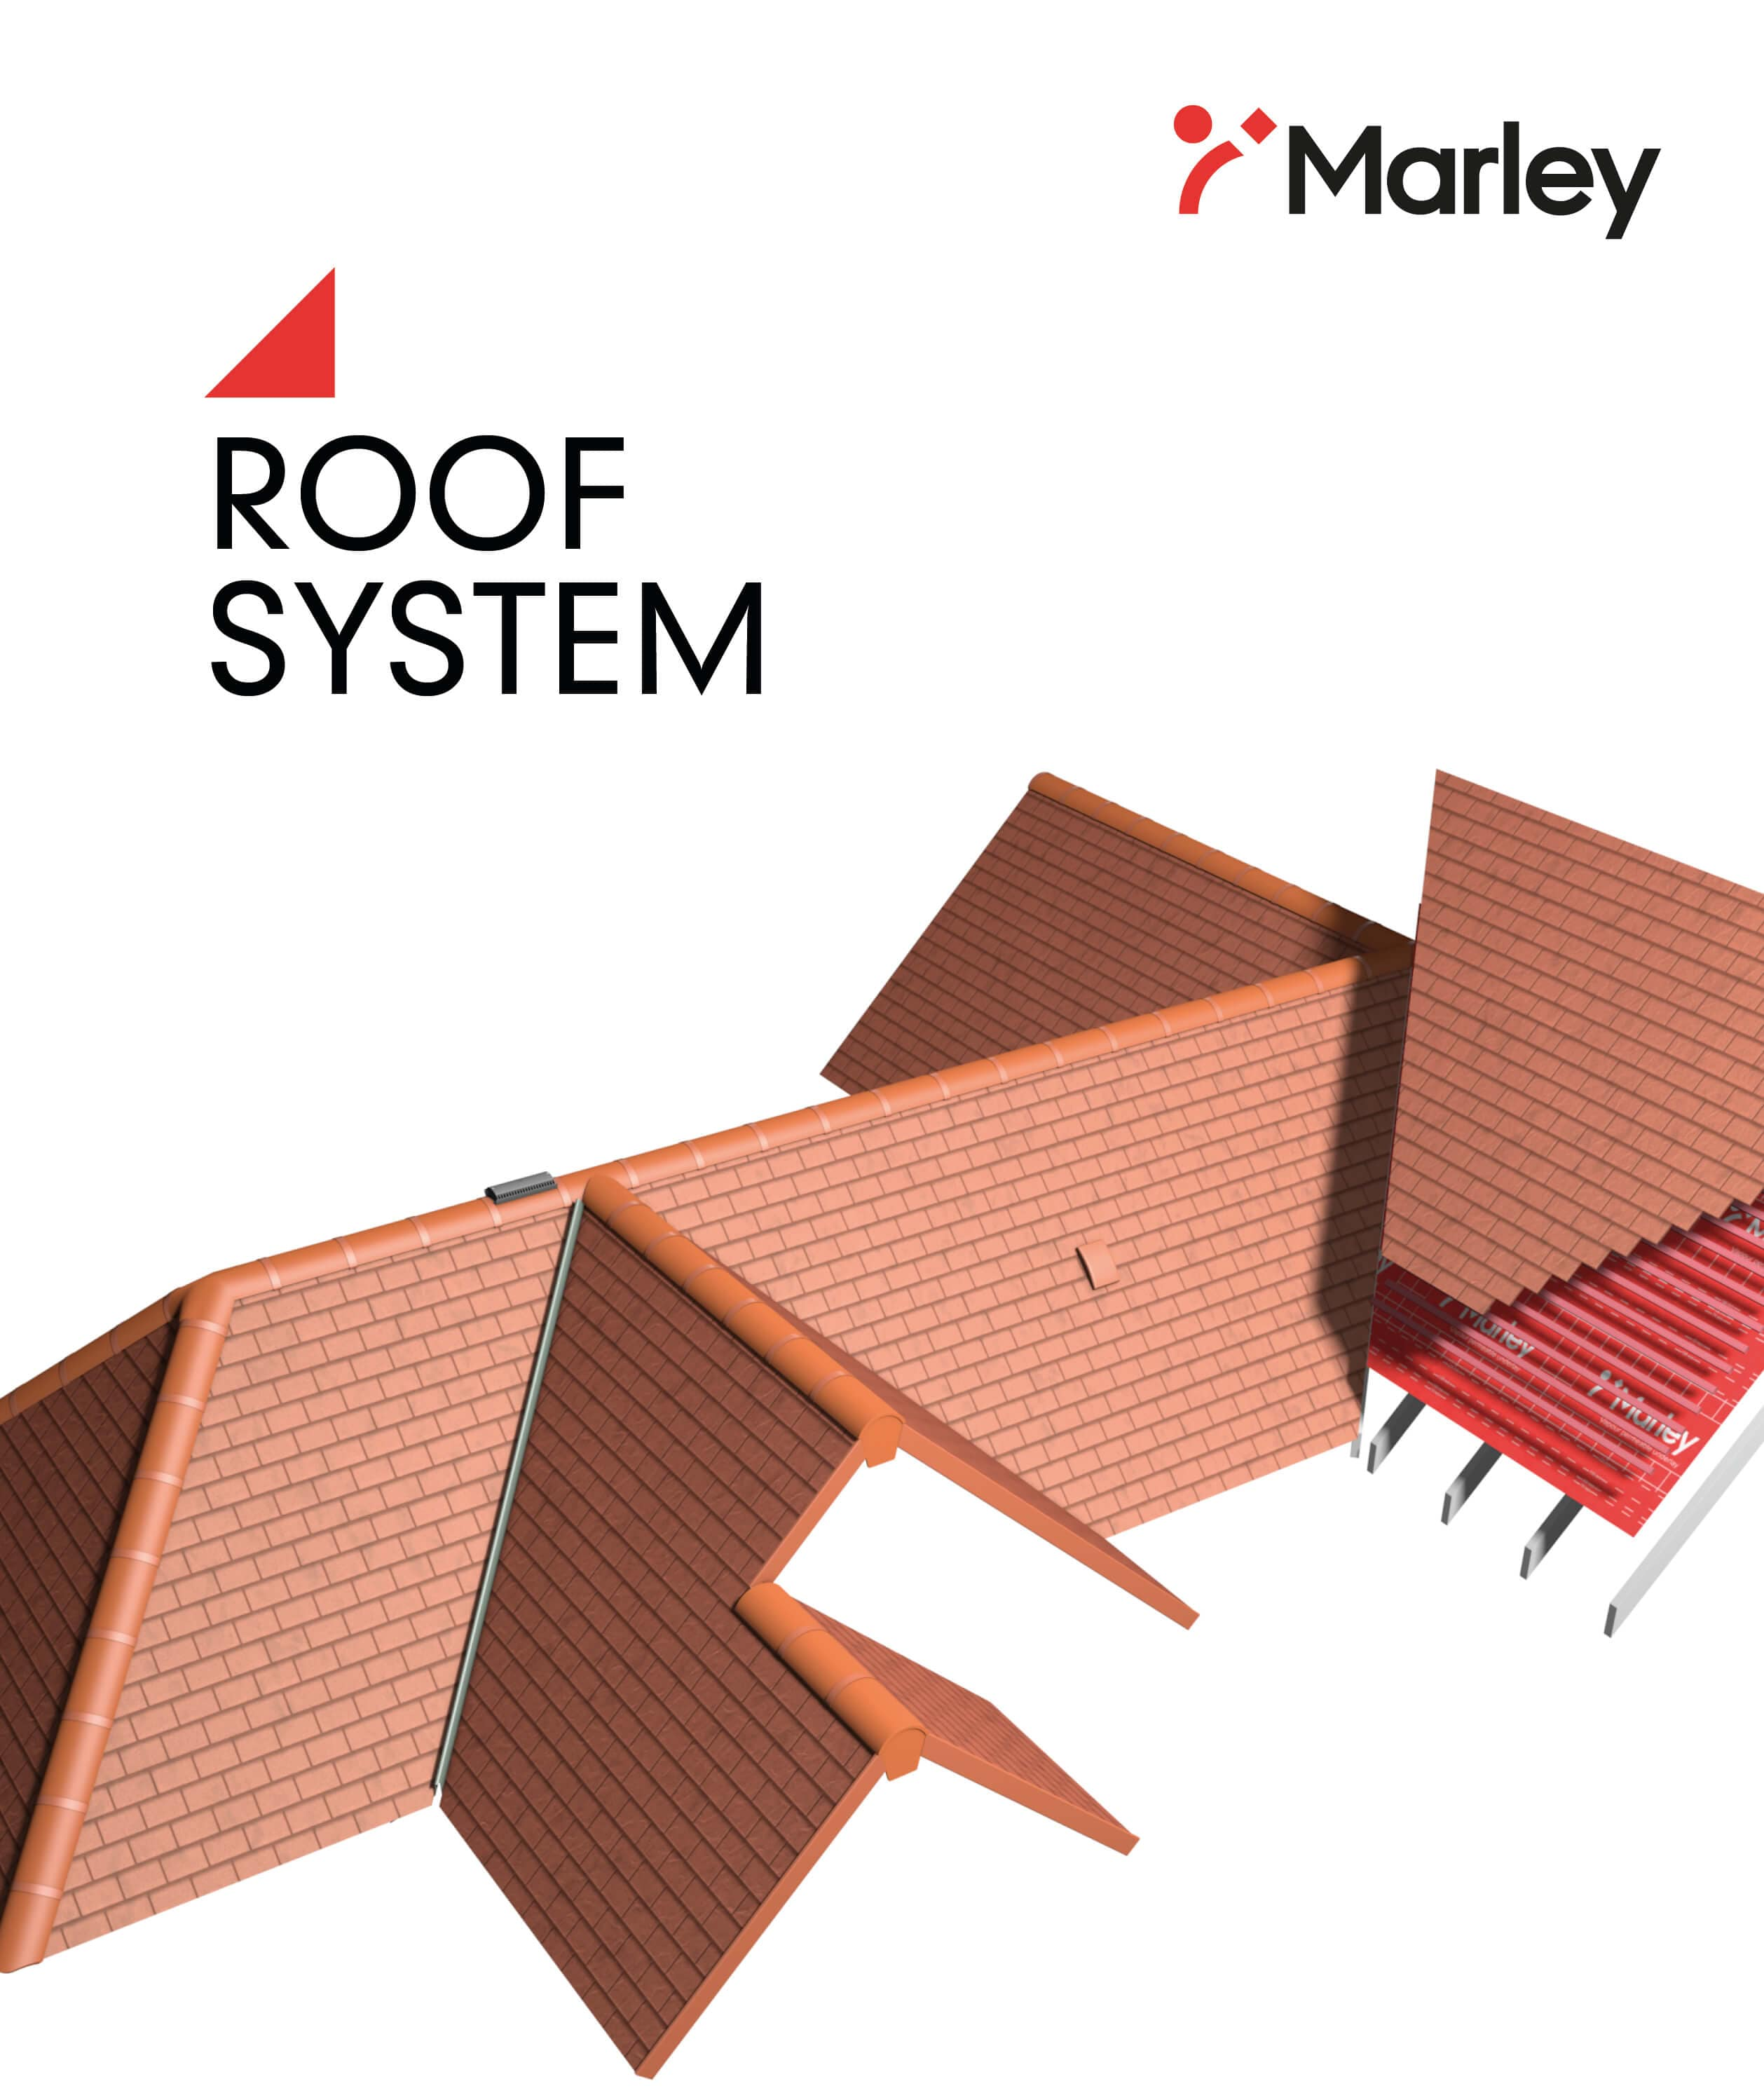 roof systems brochure cover